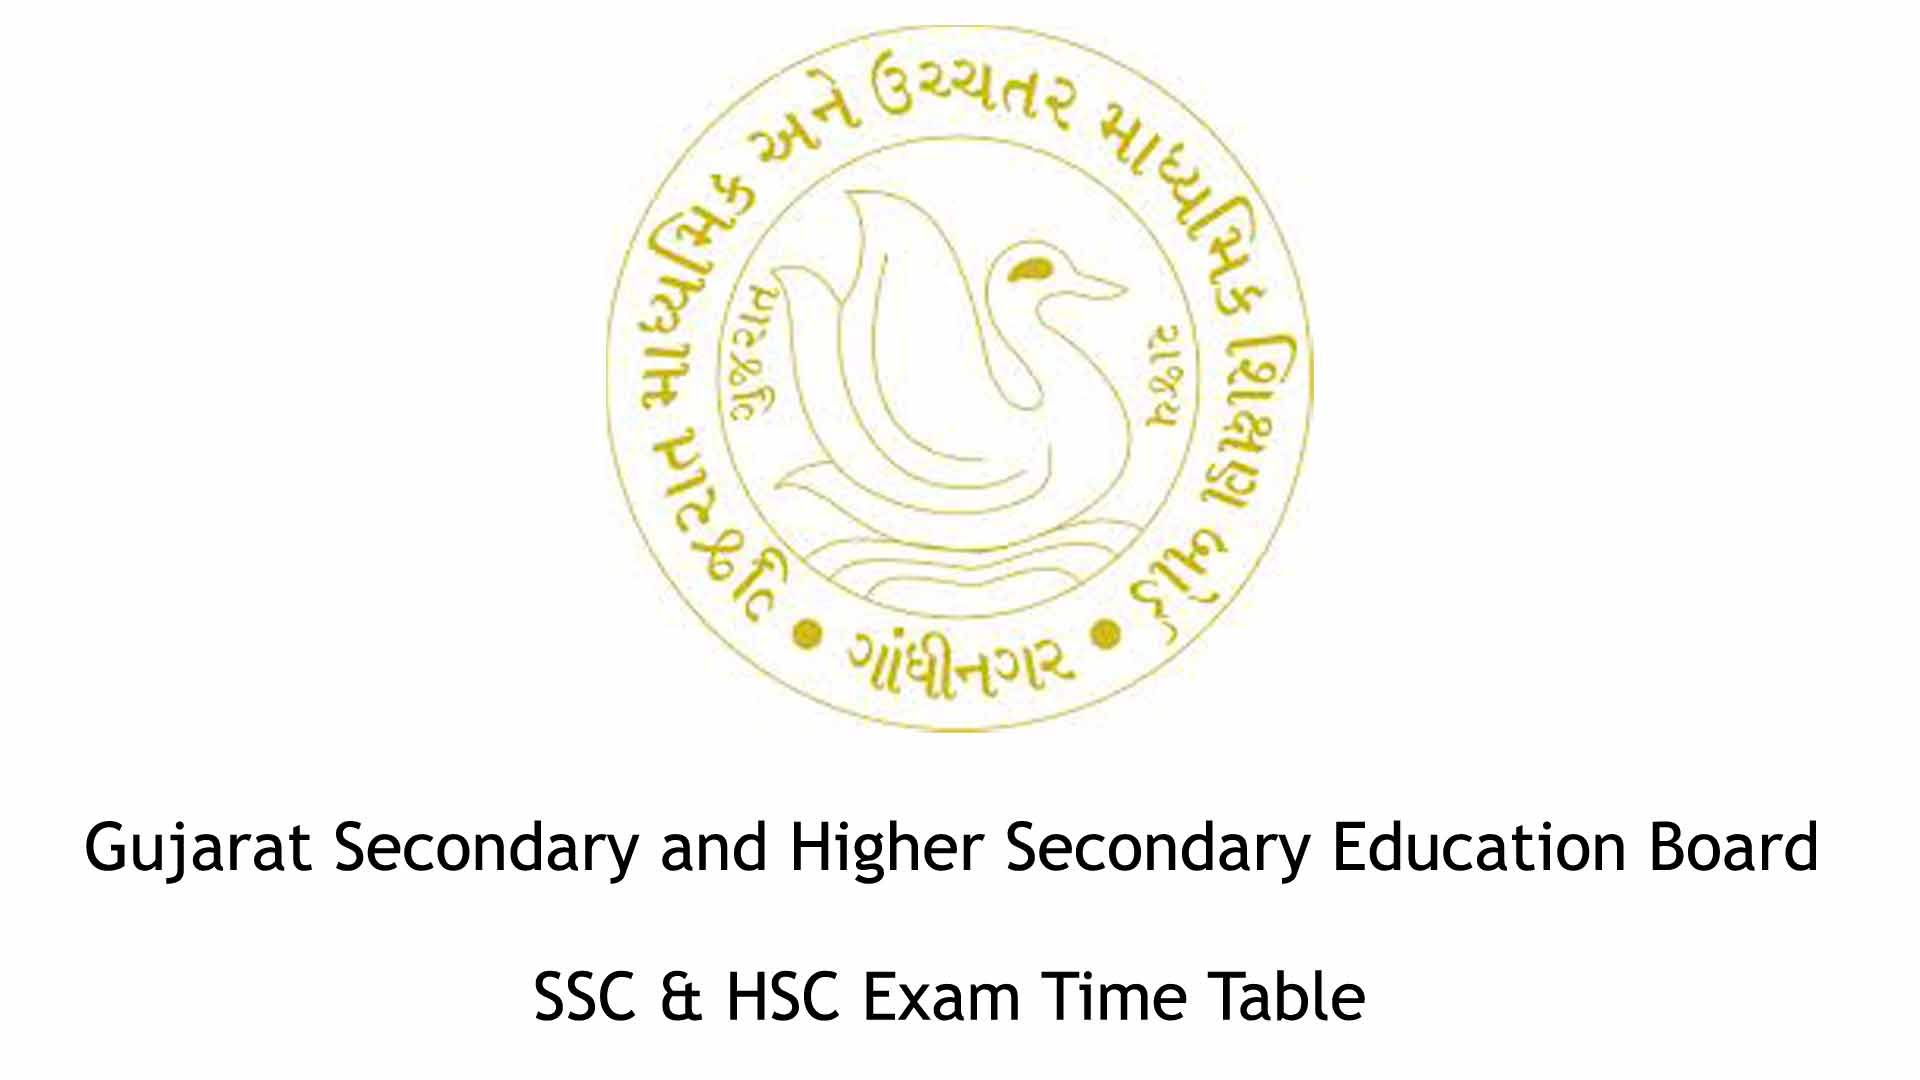 GSEB Exam Time Table